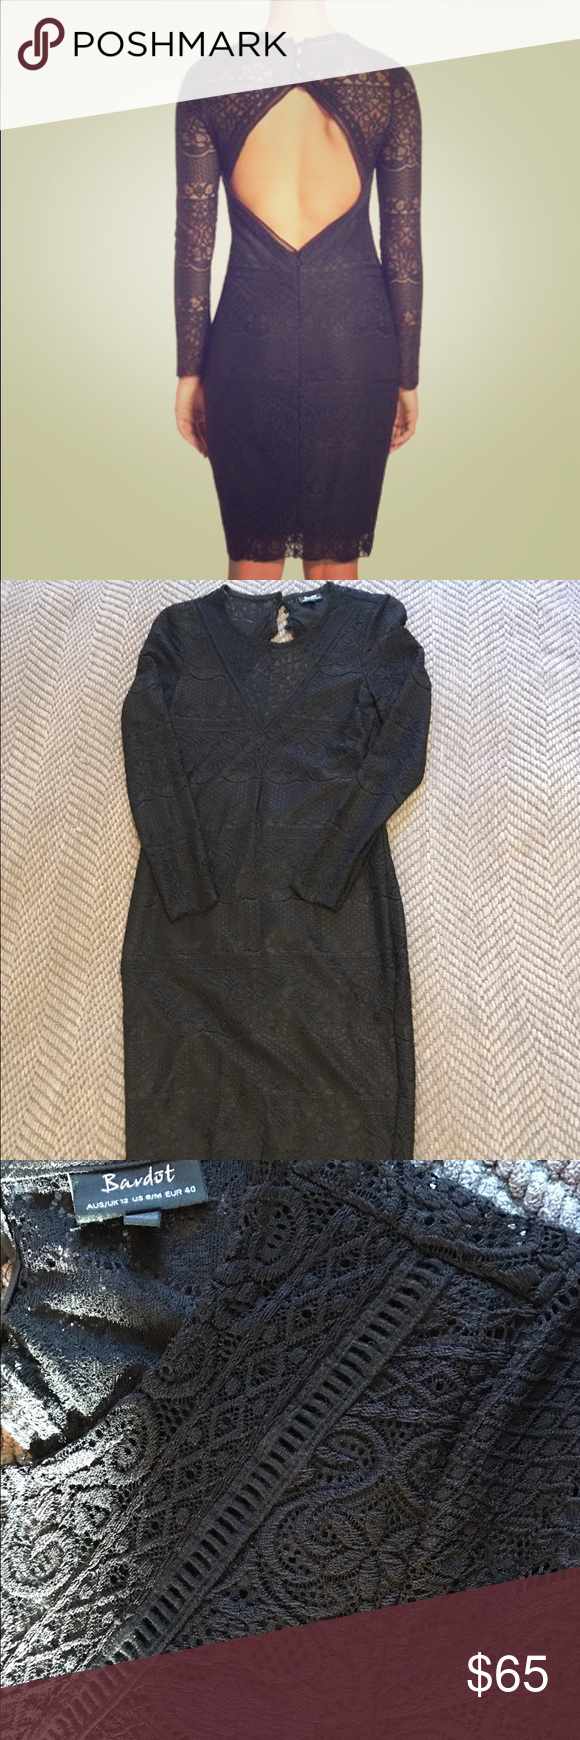 Bardot Black lace open back dress Bardot black lace open back dress. Worn once. Super stretchy and comfortable. Excellent condition. Back hidden zipper and buttons. Long sleeve, hits just above knee. Size: medium. No trades or lowballs. Bardot Dresses Midi